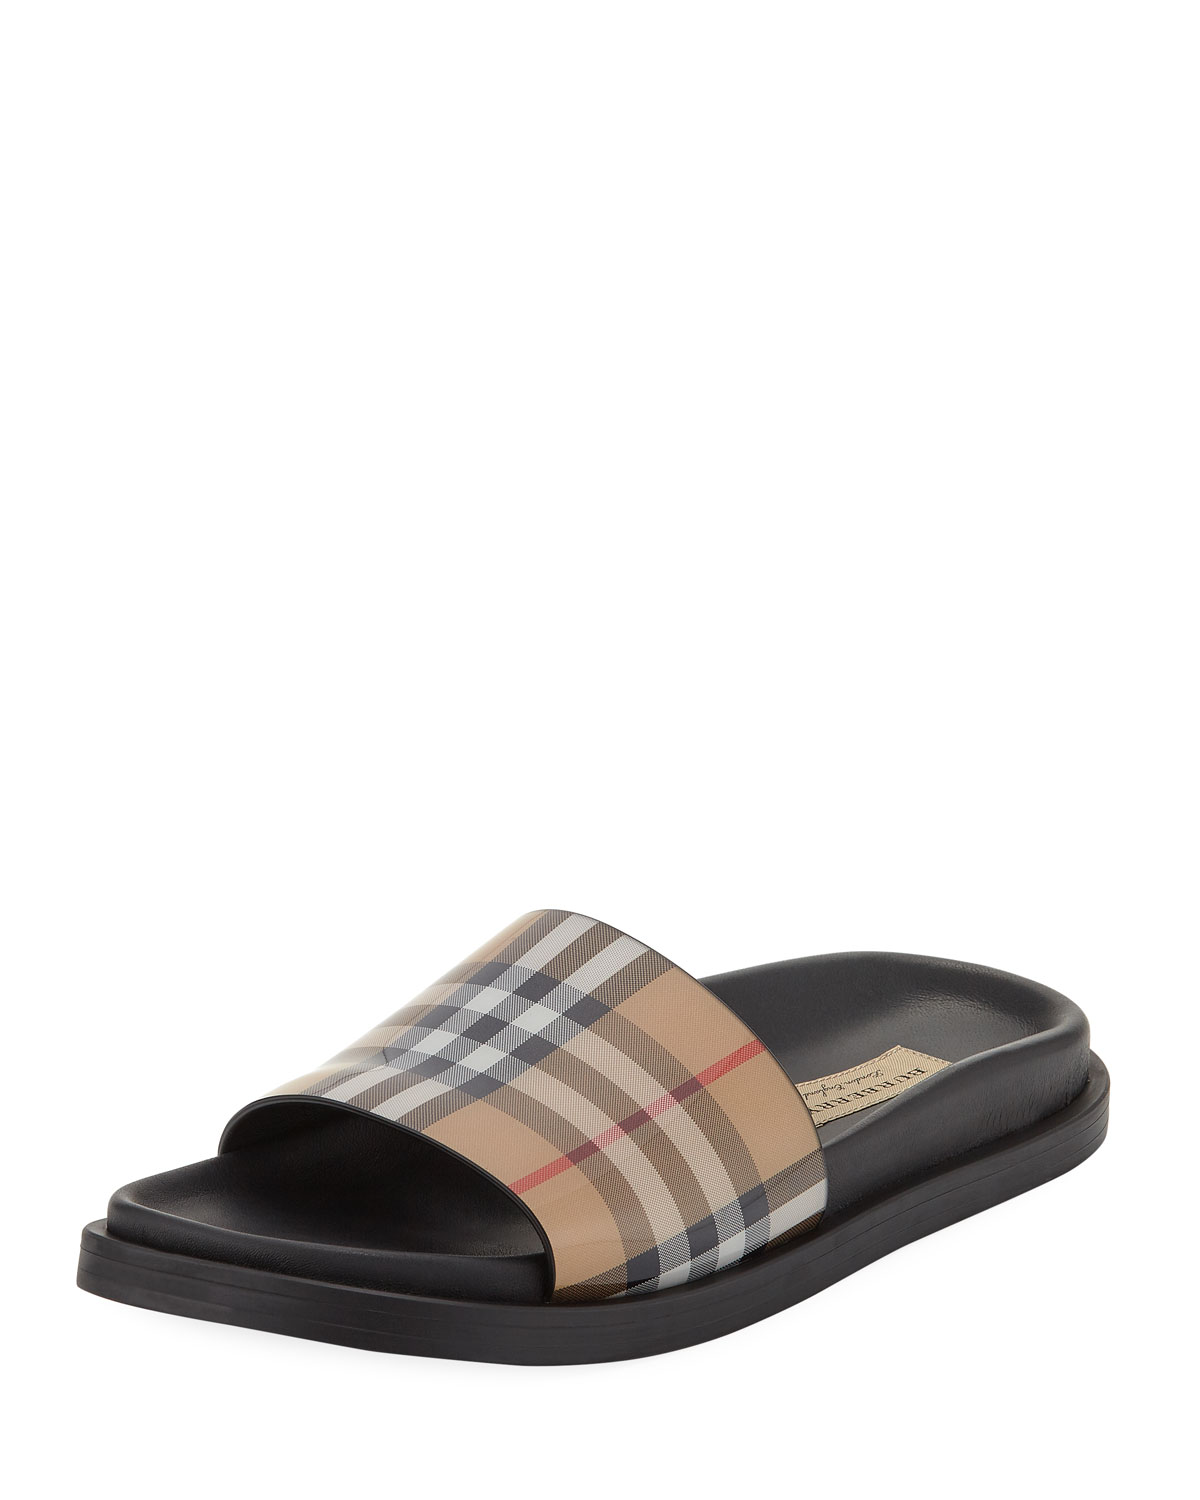 2f7eee674e3 Burberry English Icons Vintage Check Slide Sandal